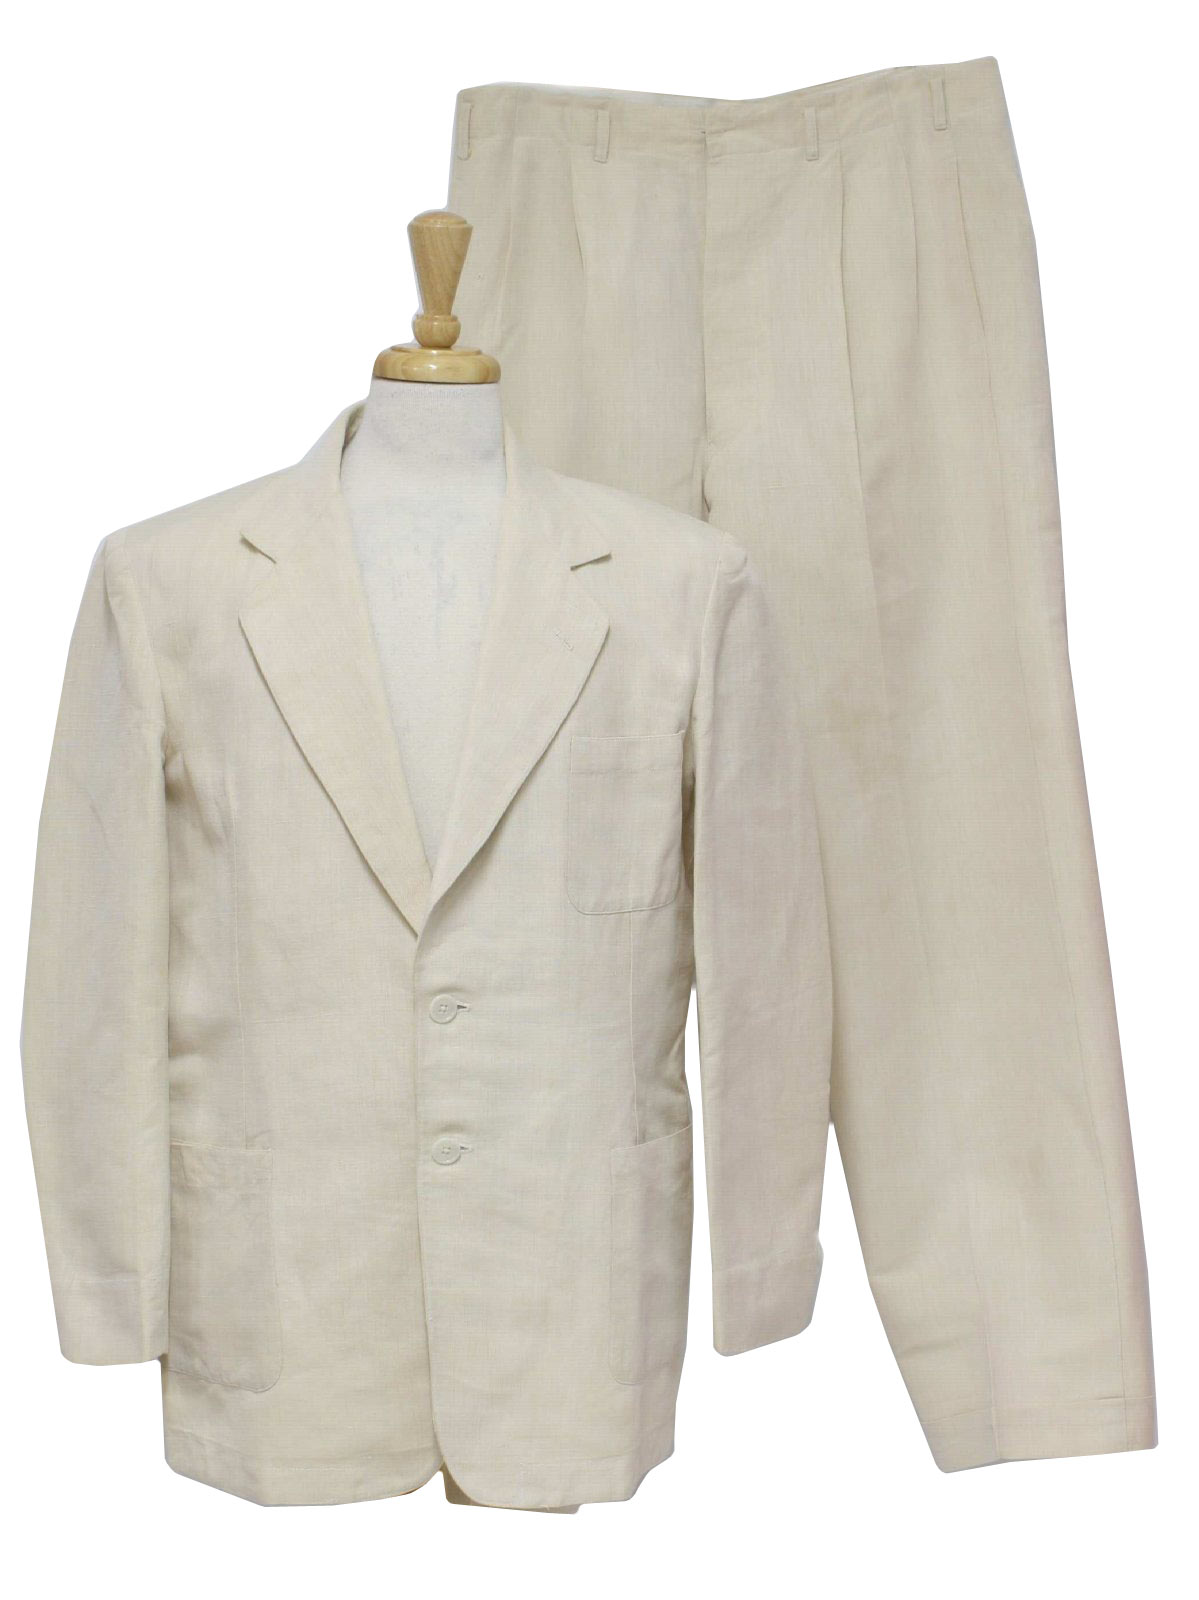 1930 S Vintage Suit Late 30s No Label Mens Two Piece Tropical With Cream Linen Weave Palm Beach Cloth Jacket Wide Notched Lapels